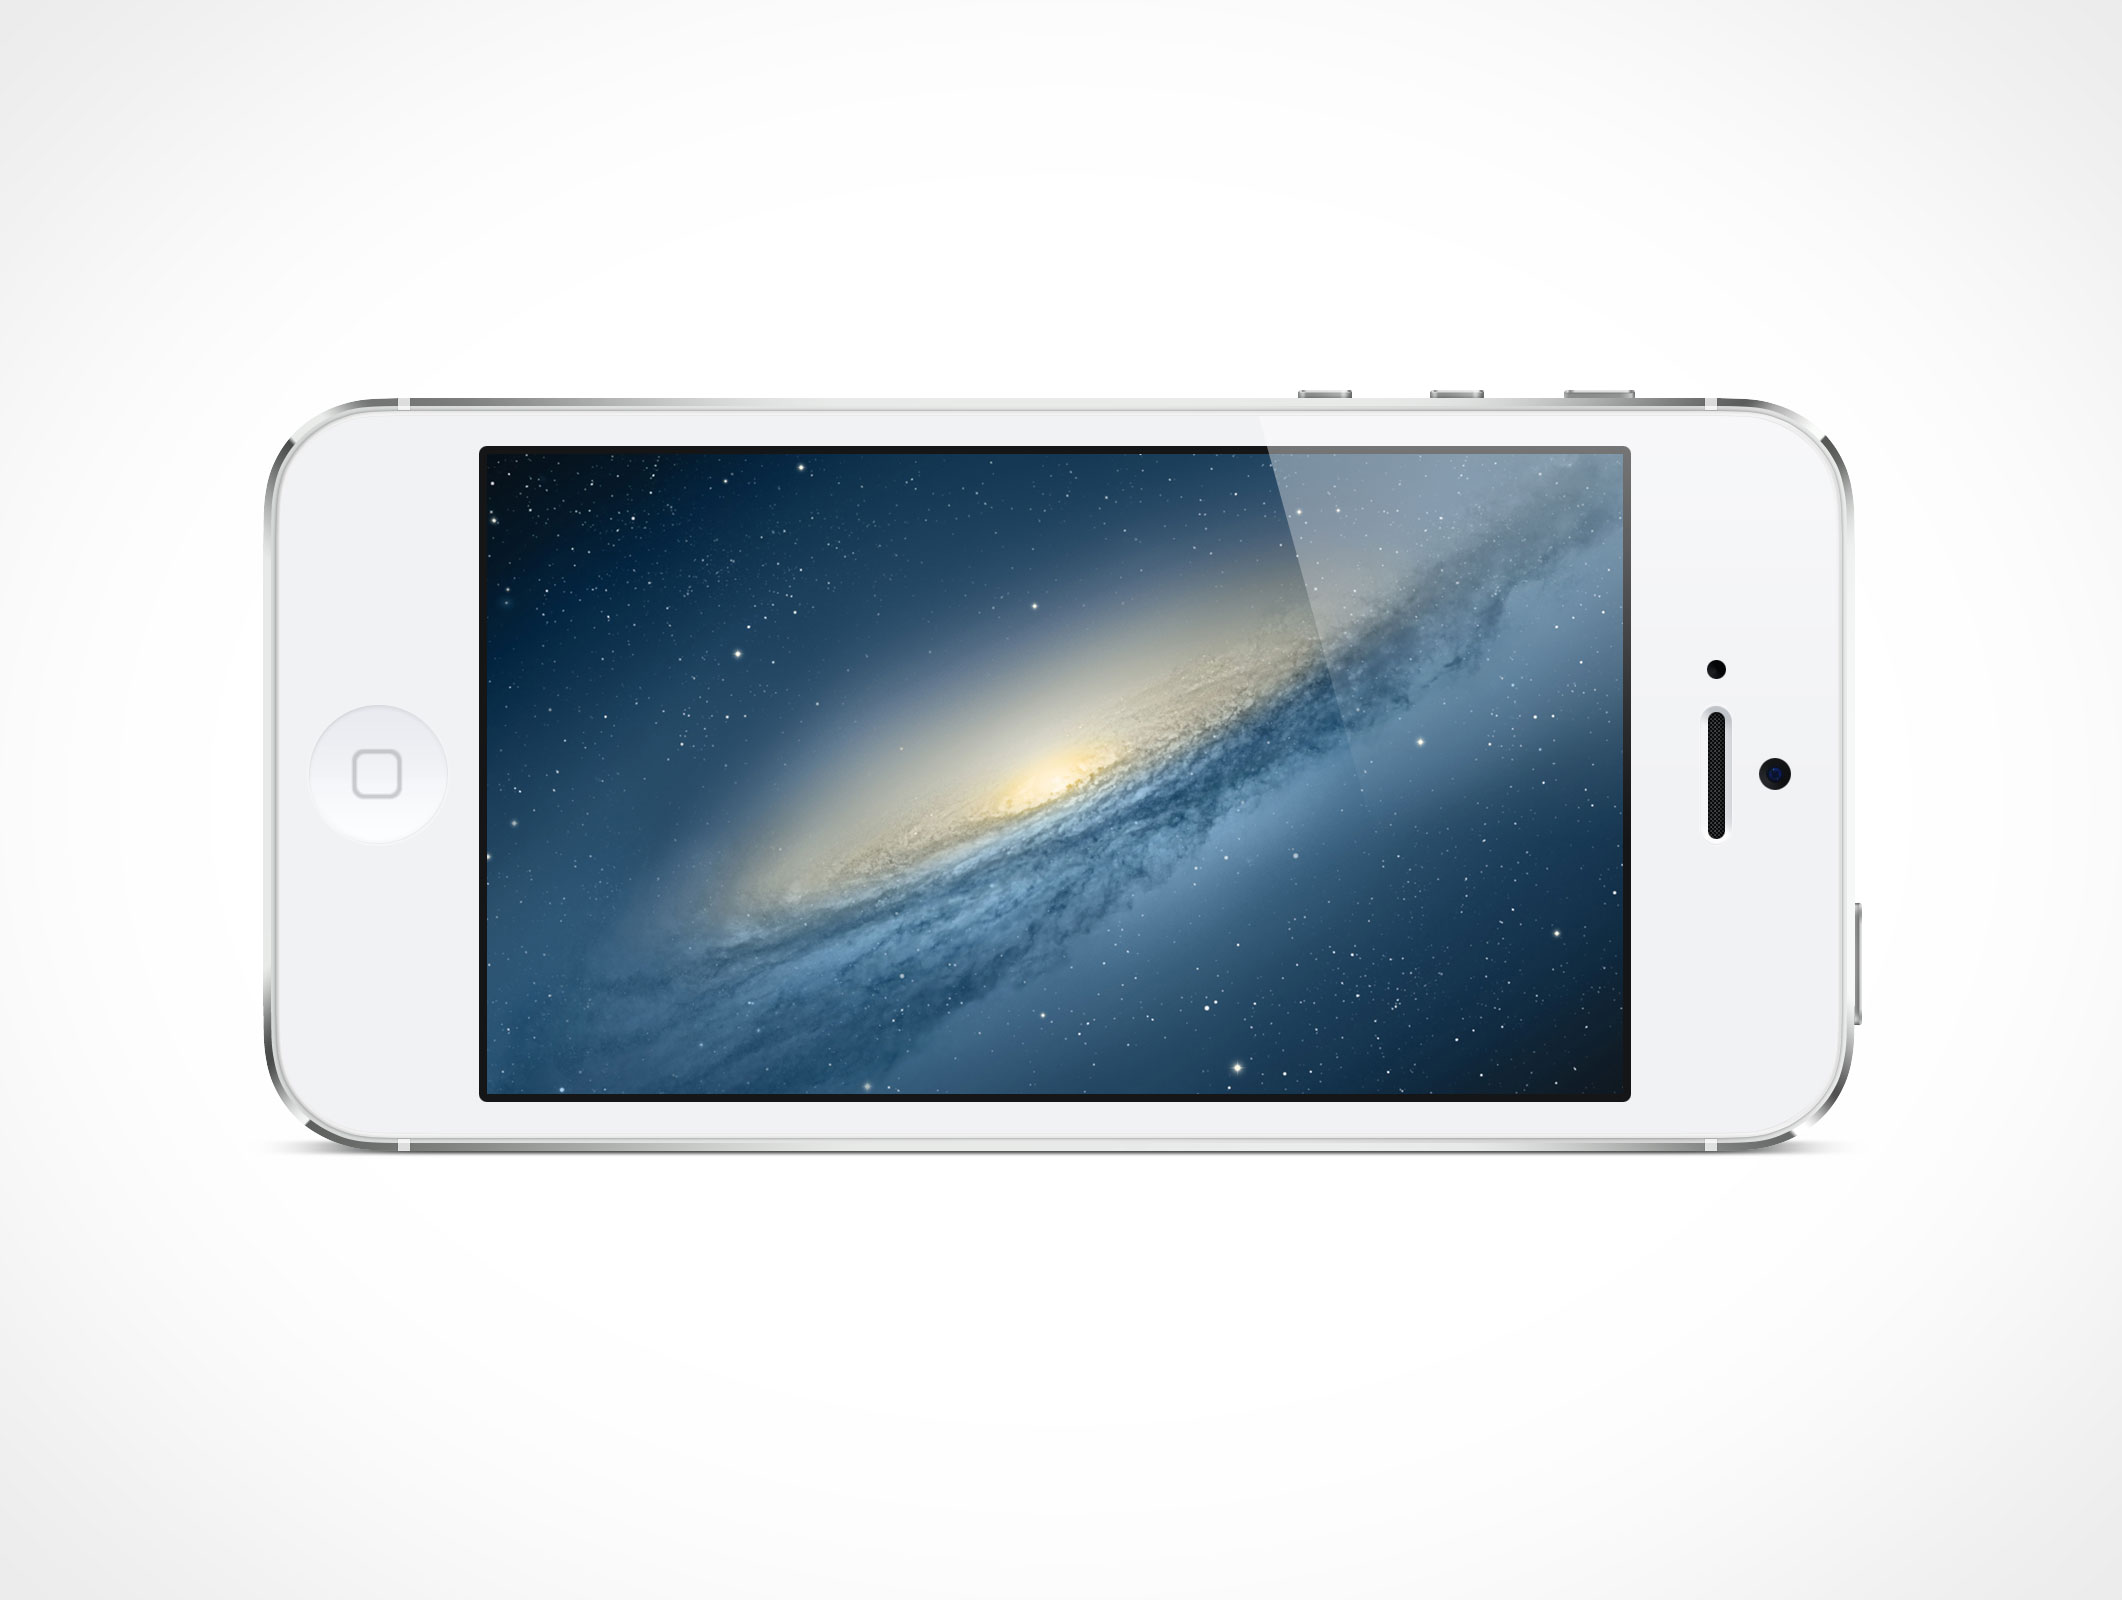 IPHONE008 White Iphone 5 Psd